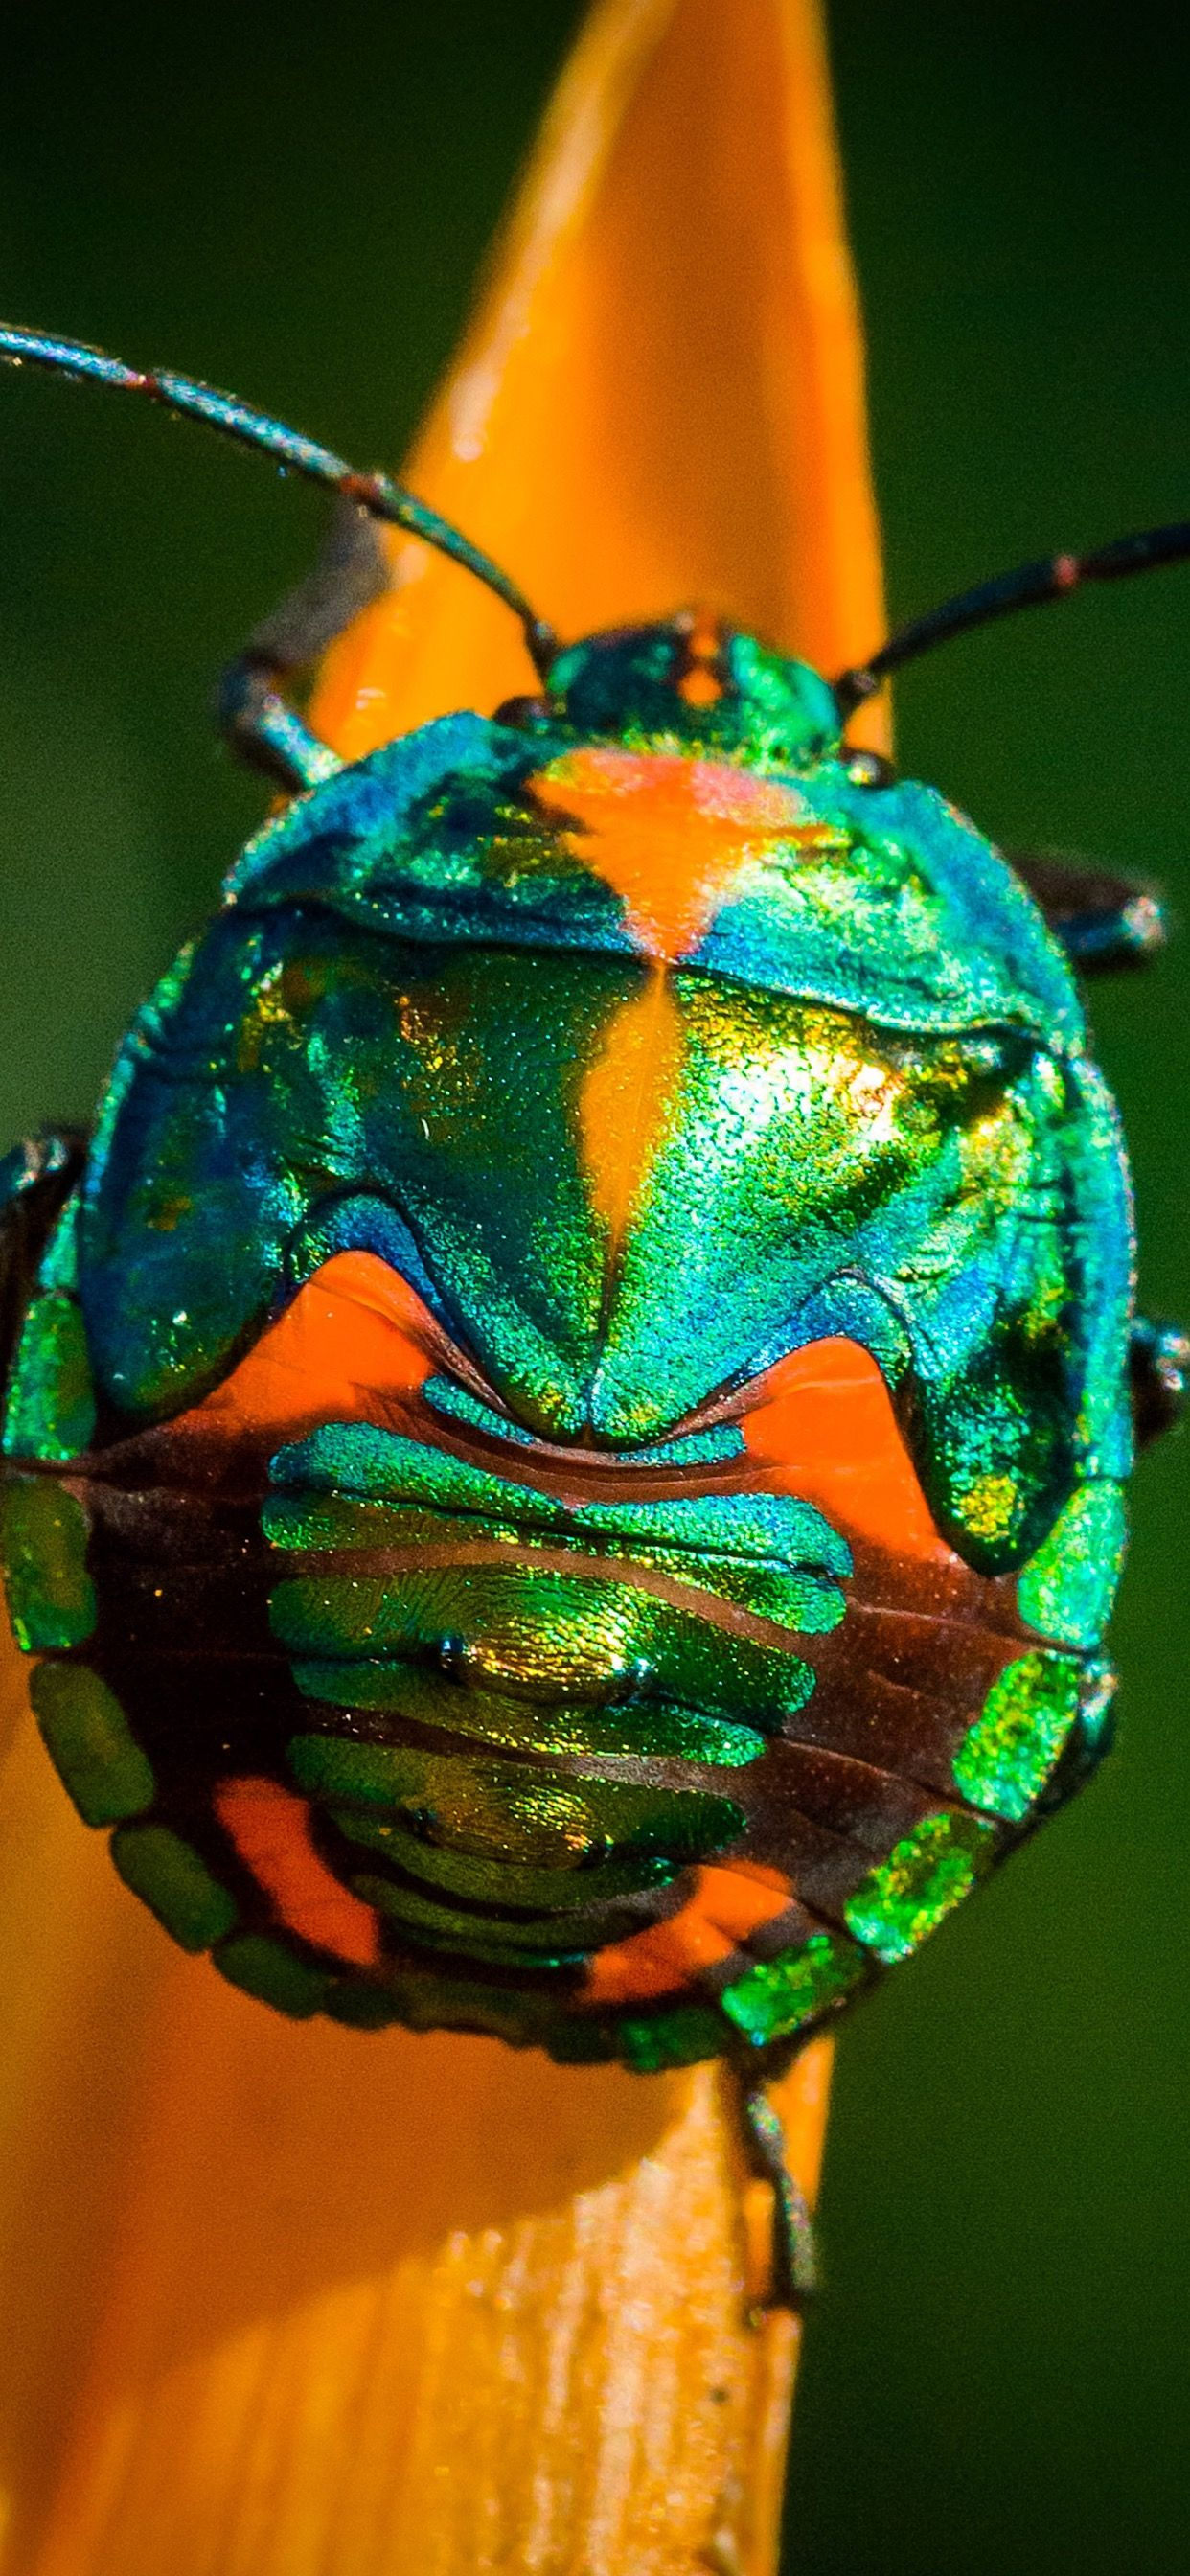 Pictures of insects image by HD Iphone Xs Max Wallpapers